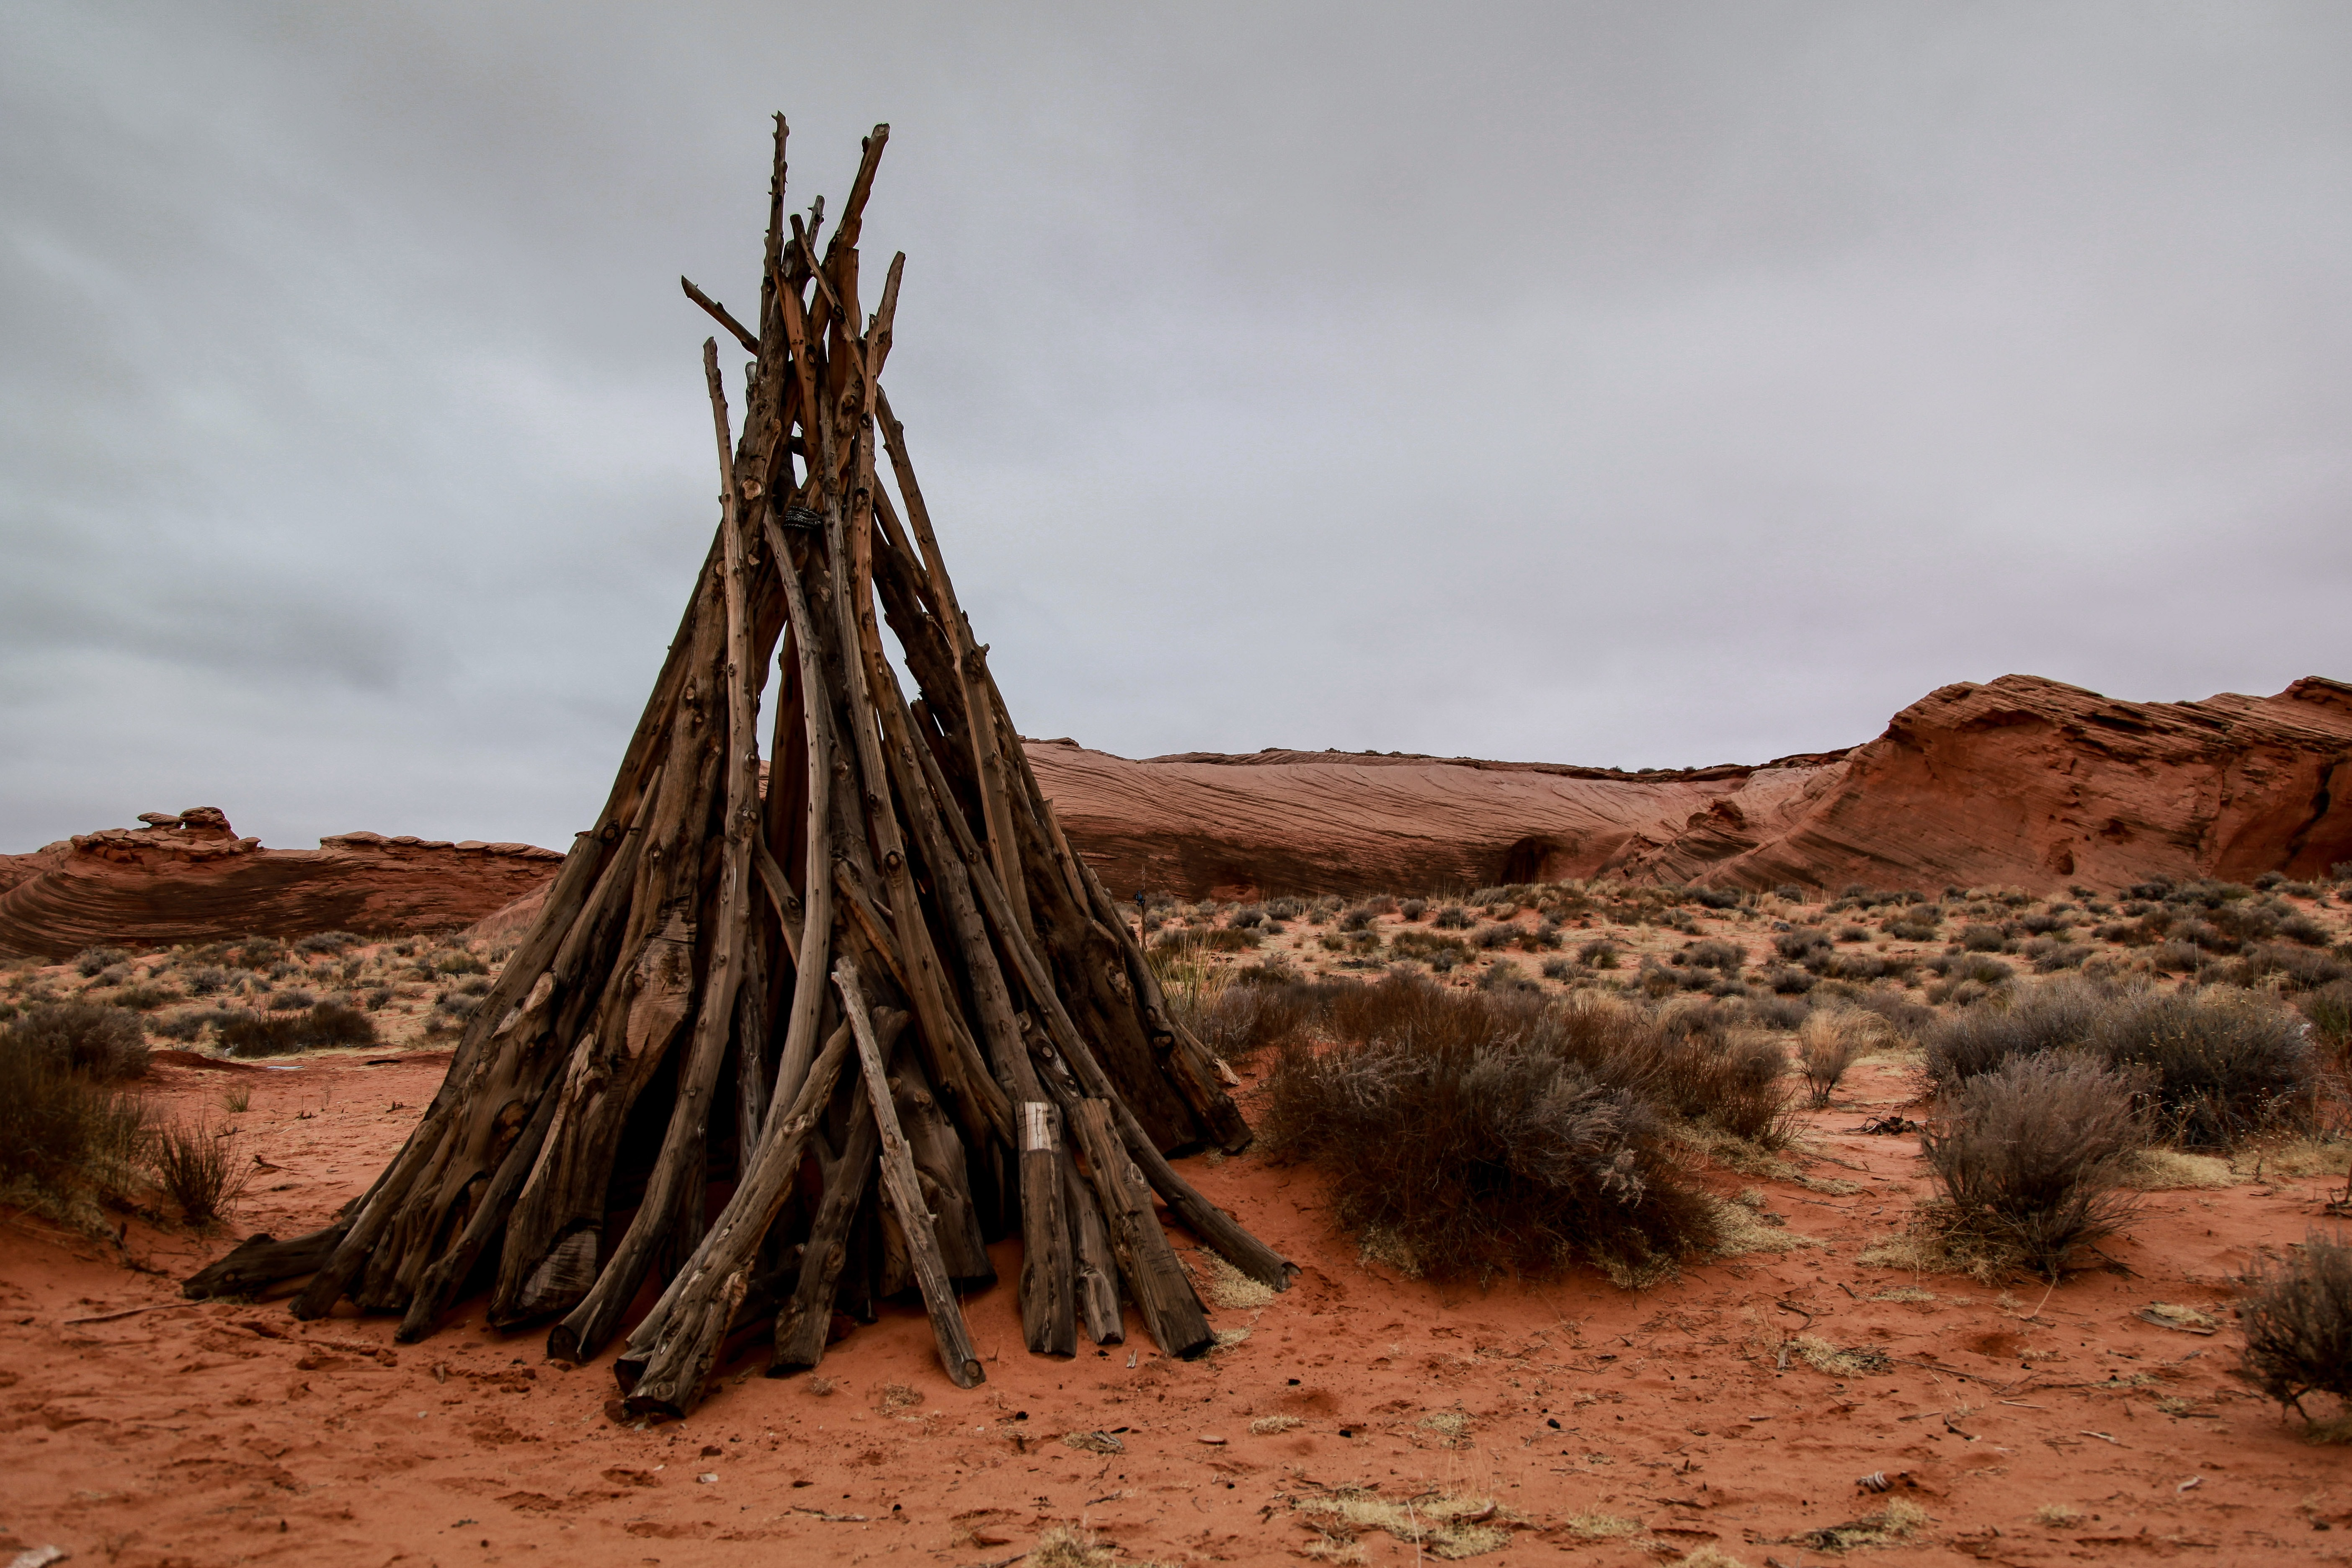 Sticks form a rustic teepee in the desert